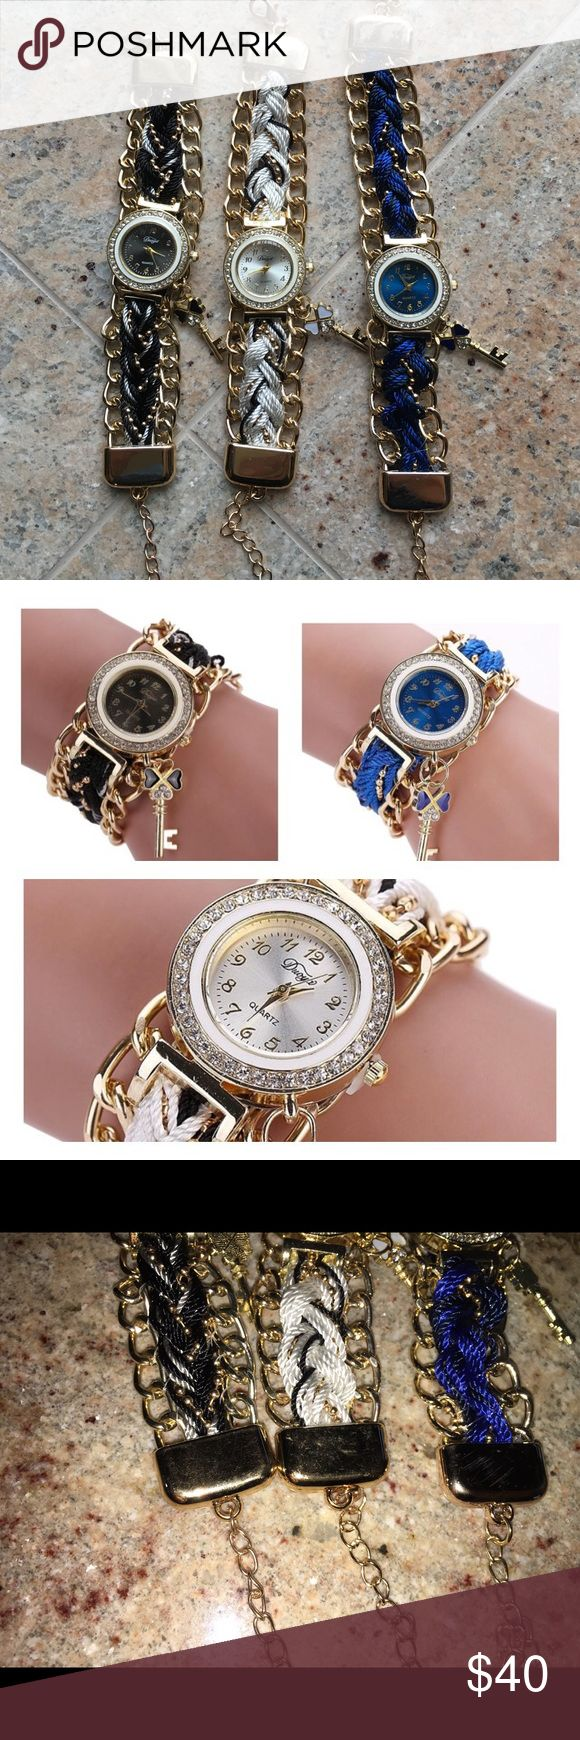 Fashion Rhinestone Keychains Braided Band Watches Fashion Rhinestone Keychains Braided Band Watches. ALL BRAND NEW. NOT USED. All gold with braided color. One black. One blue. One white. Each sold separately. One for $12😊 Or do 2 for $20😊 or all 3 for $25. Comment which one you would like I will gladly create a separate listing for you to purchase😊 picture 3 is factory flaw not noticeable. Accessories Watches